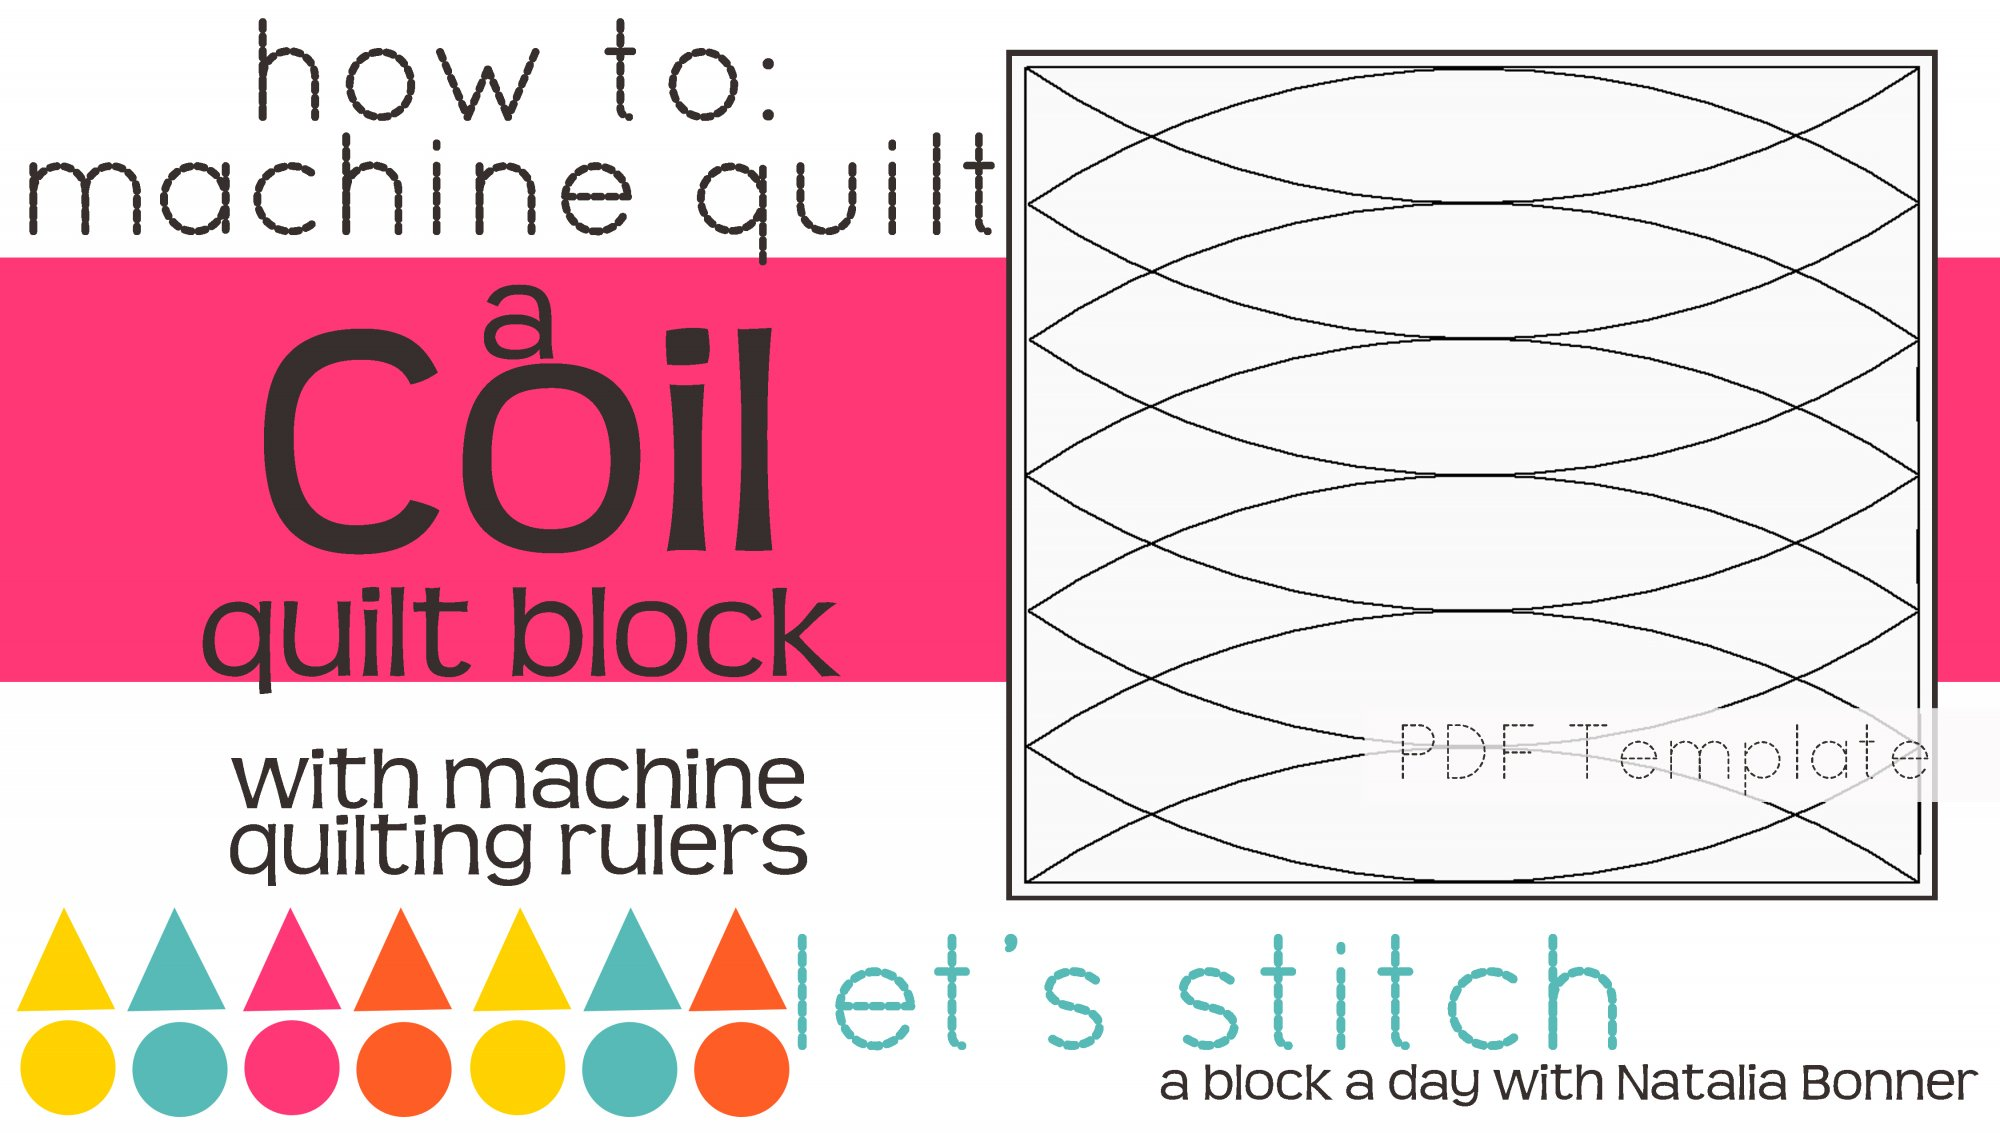 Let's Stitch - A Block a Day With Natalia Bonner - PDF - Coil